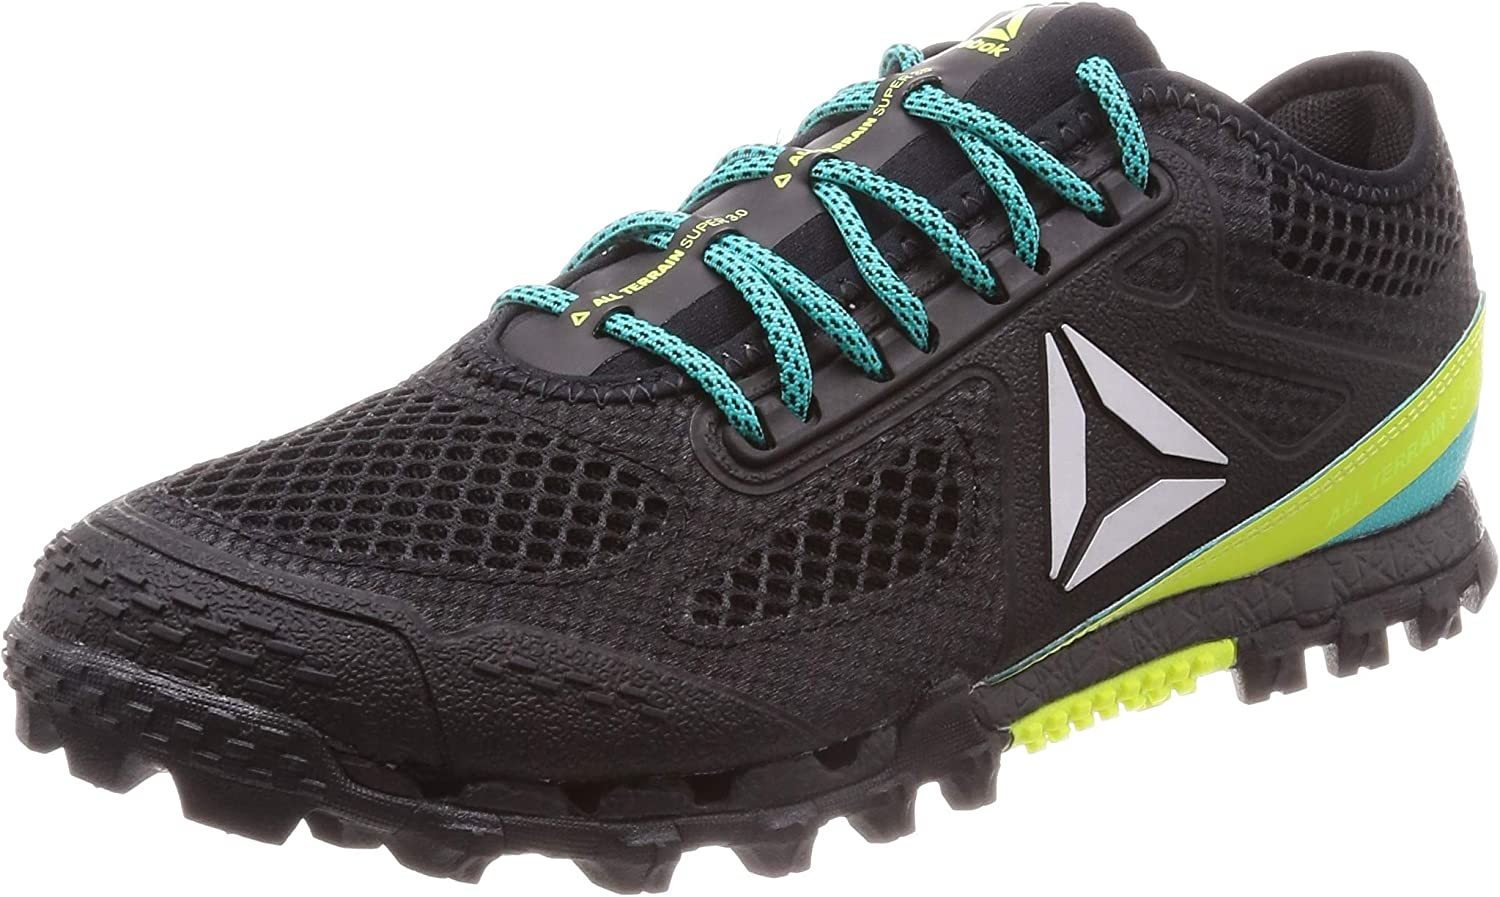 Reebok at Super 3.0 Stealth Women's Running shoes - SS19